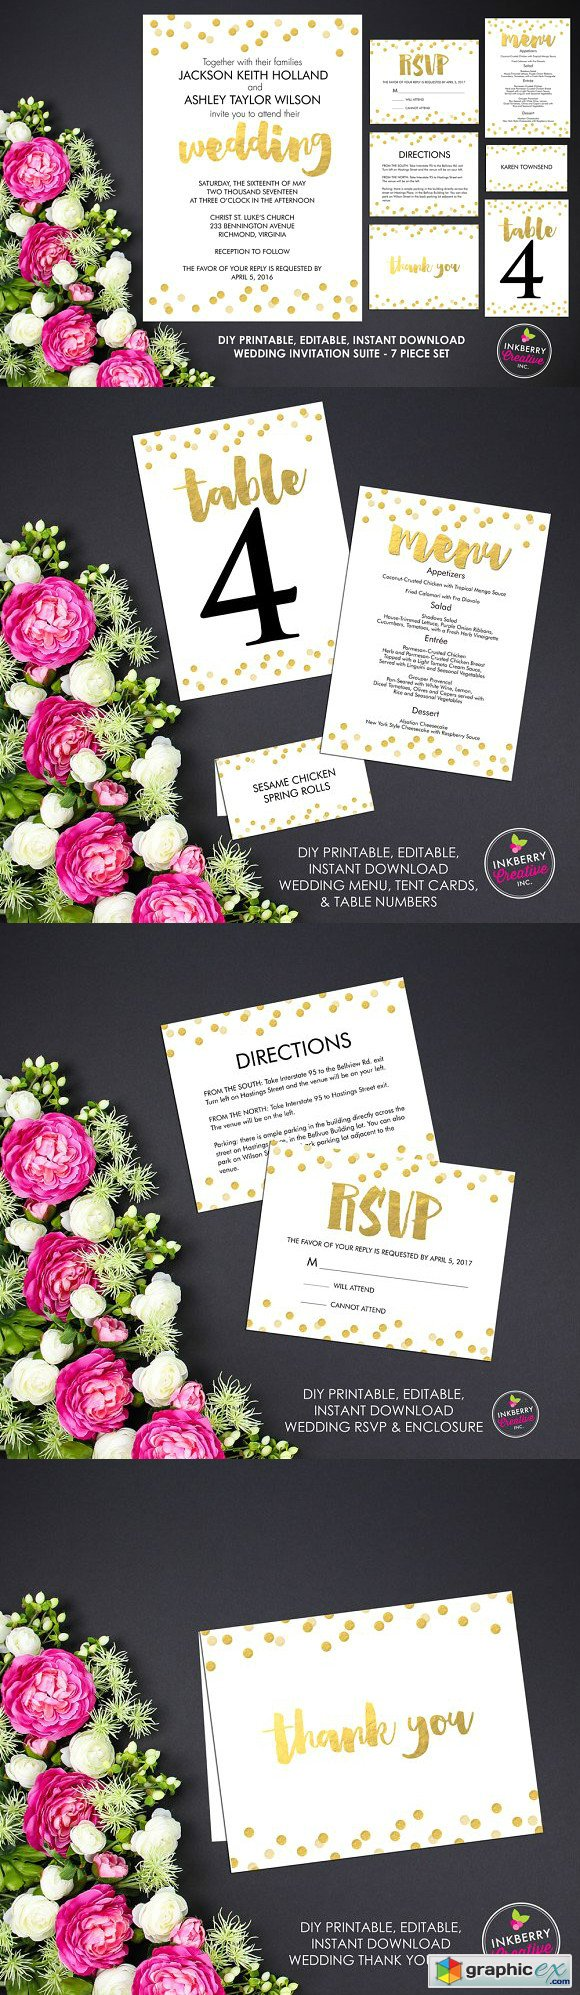 Gold Confetti Wedding Suite